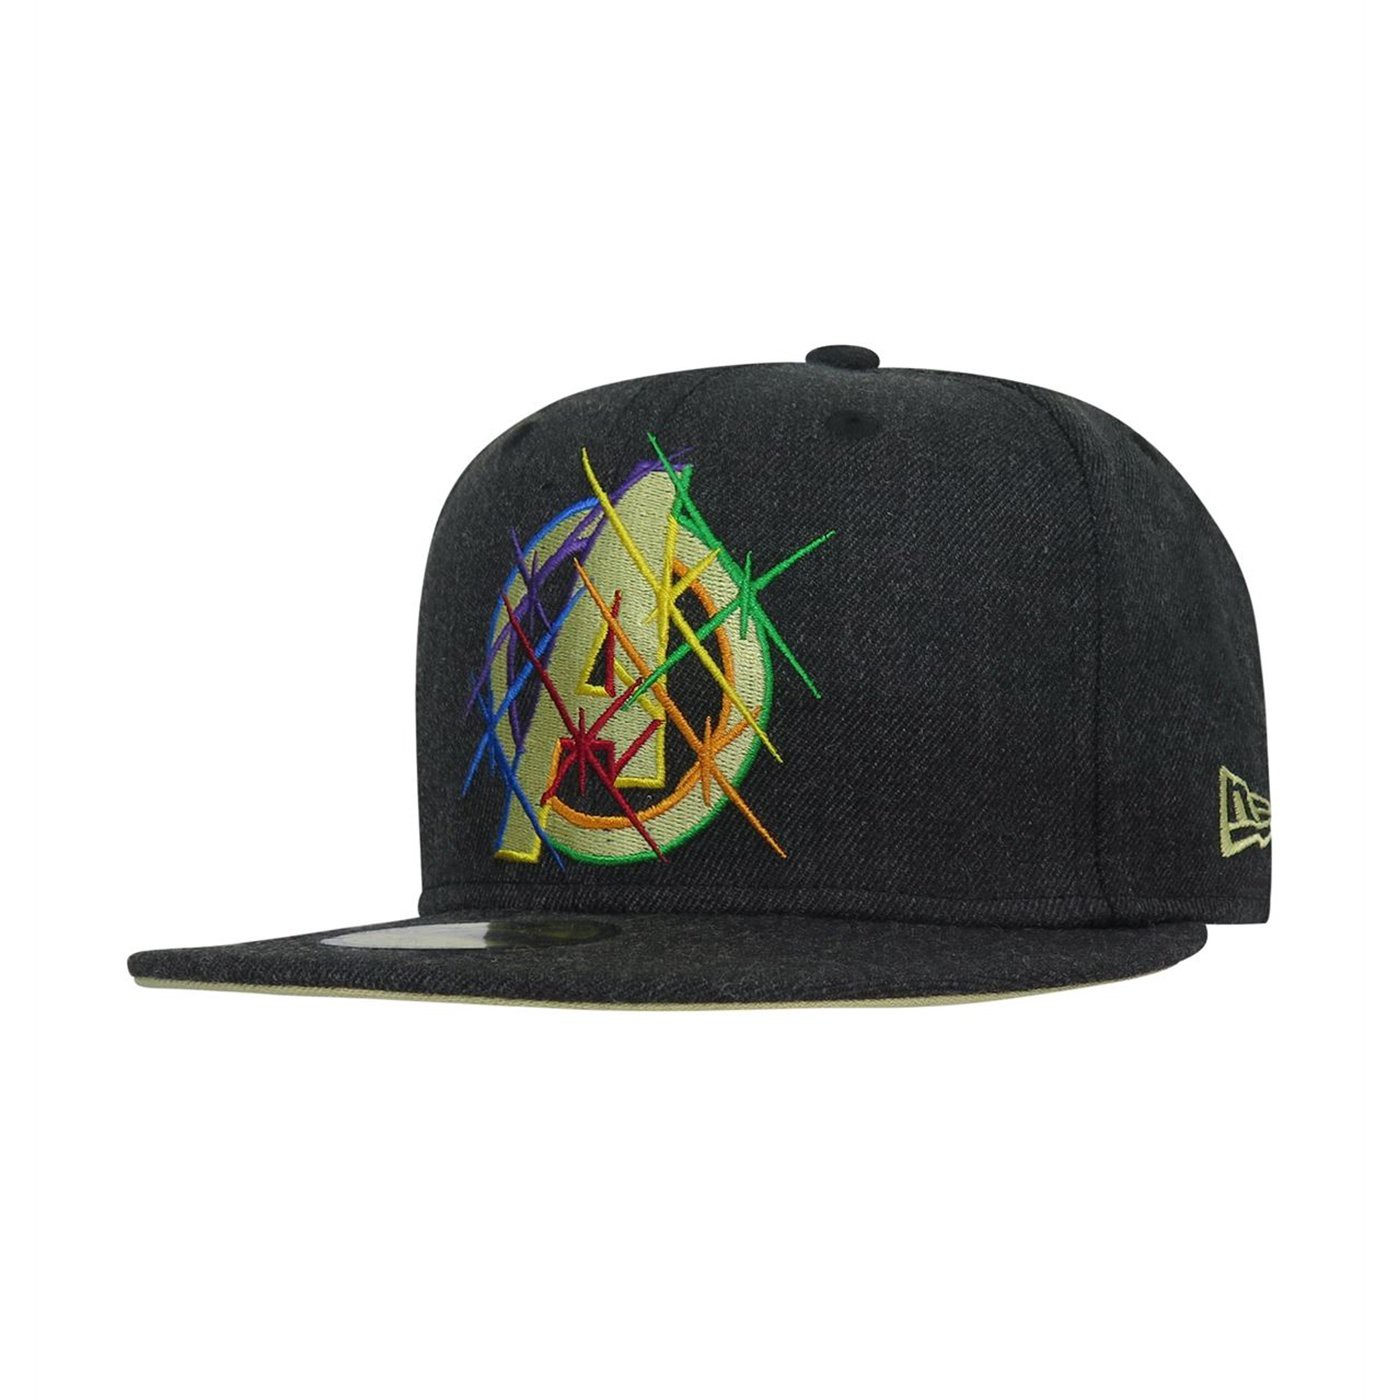 Avengers Infinity War Logo 59Fifty Fitted Hat